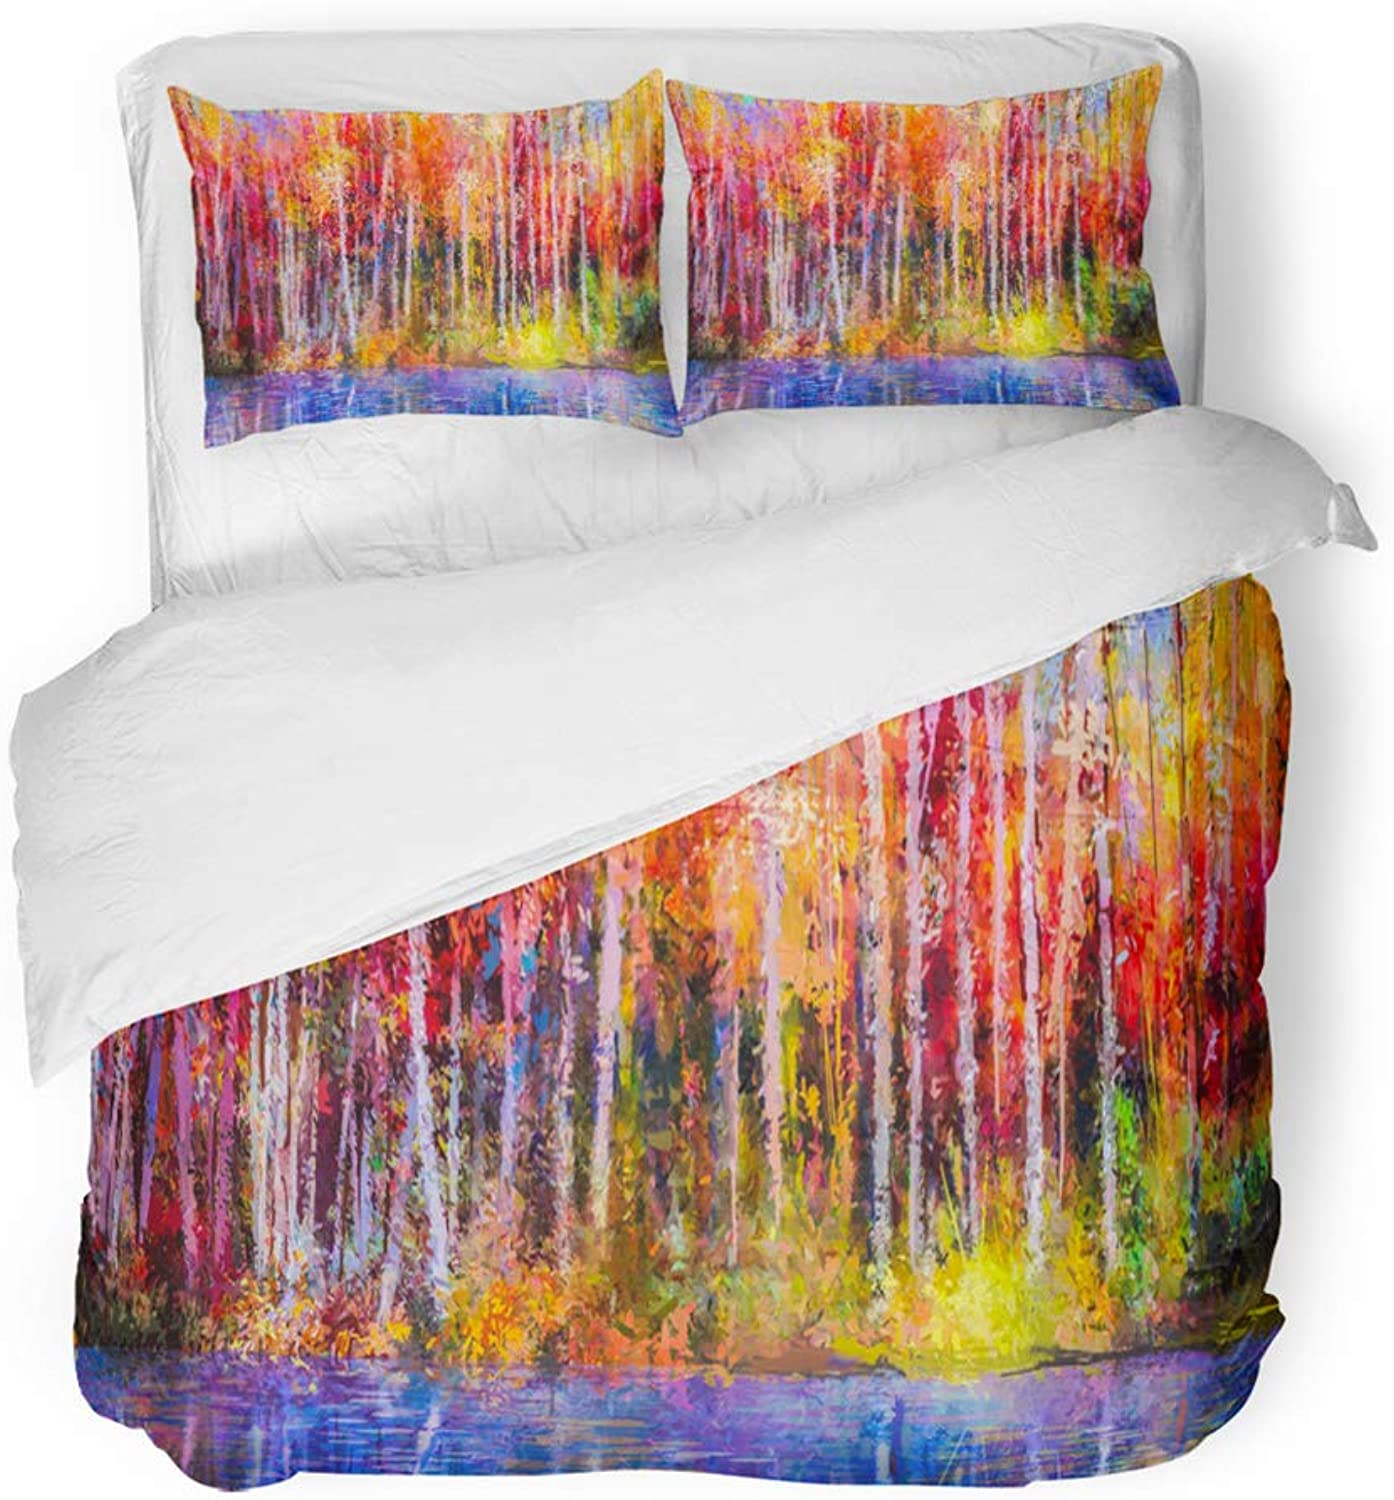 Emvency Decor Duvet Cover Set Twin Size Oil Painting colorful Autumn Trees Semi Abstract of Forest Aspen Yellow Red 3 Piece Brushed Microfiber Fabric Print Bedding Set Cover